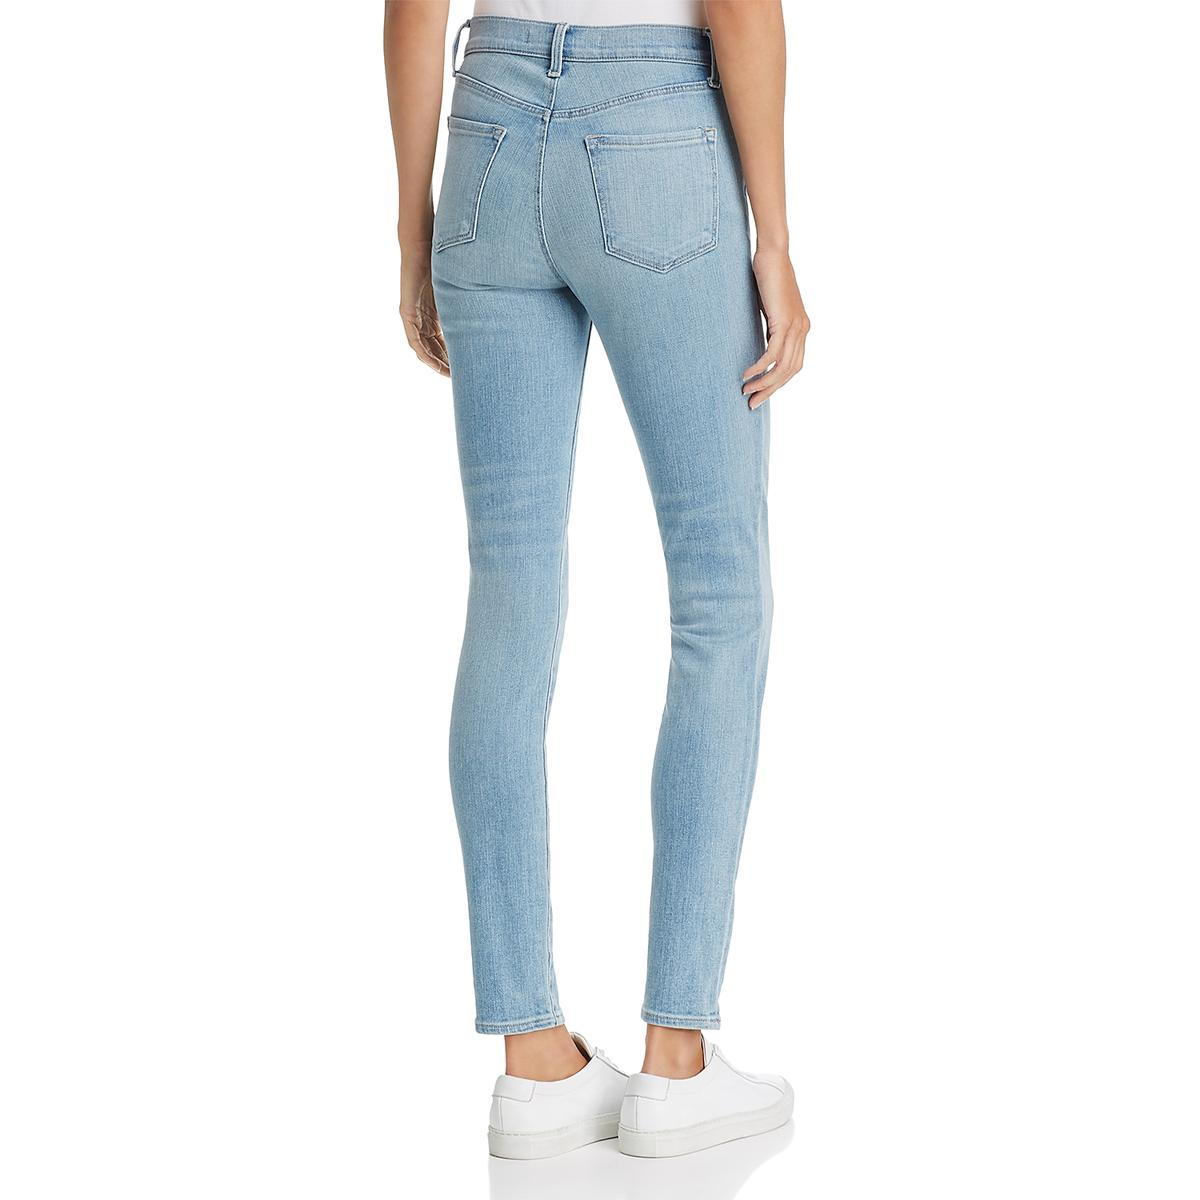 d8c098fae5b6 Details about J Brand Womens Maria Blue High Rise Faded Stretch Skinny Jeans  29 BHFO 1606